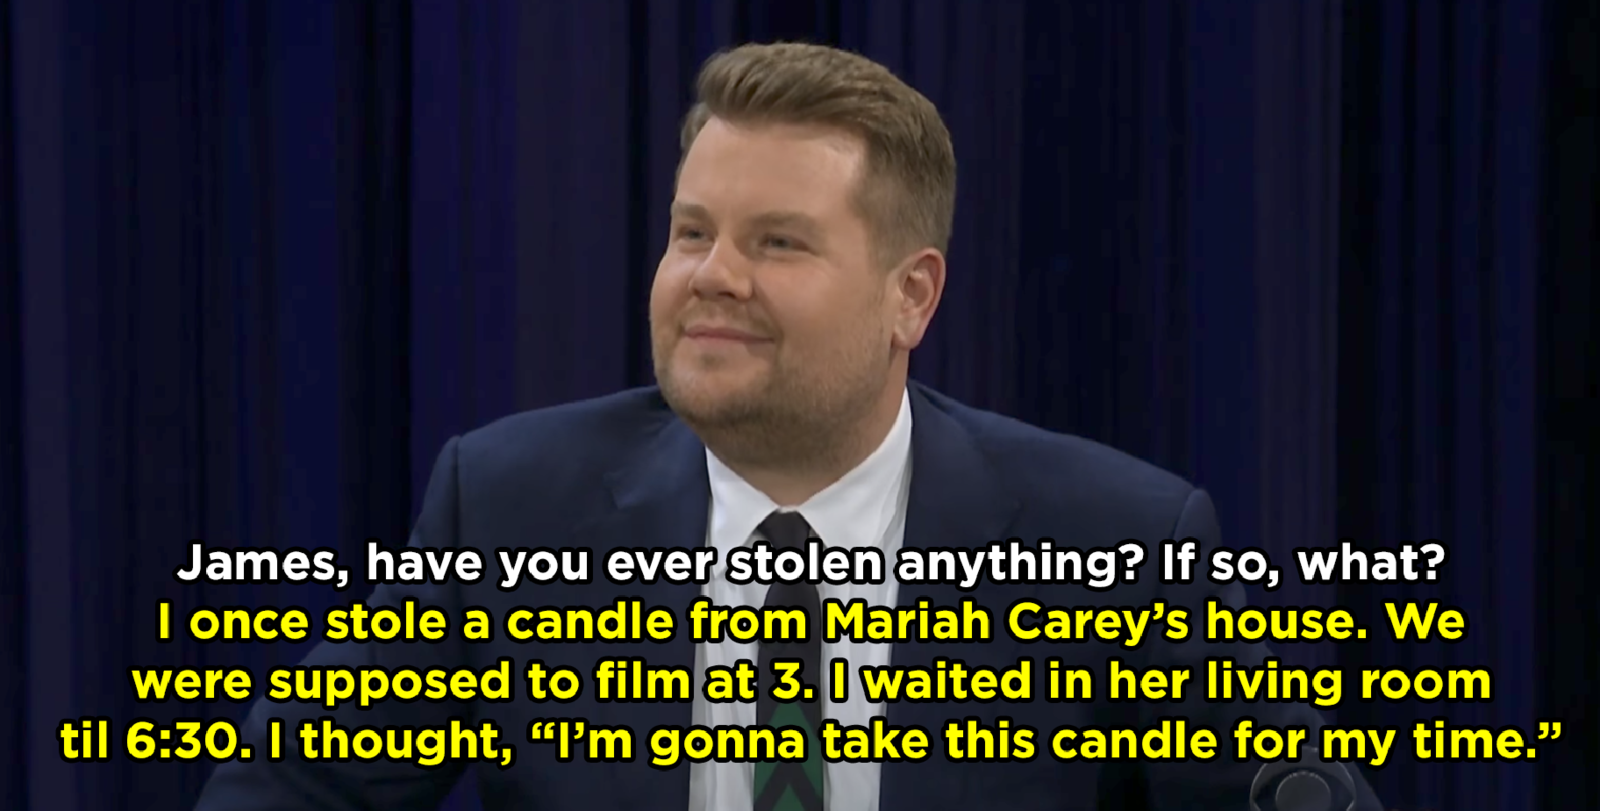 James Cordon admits he stole a candle from Mariah